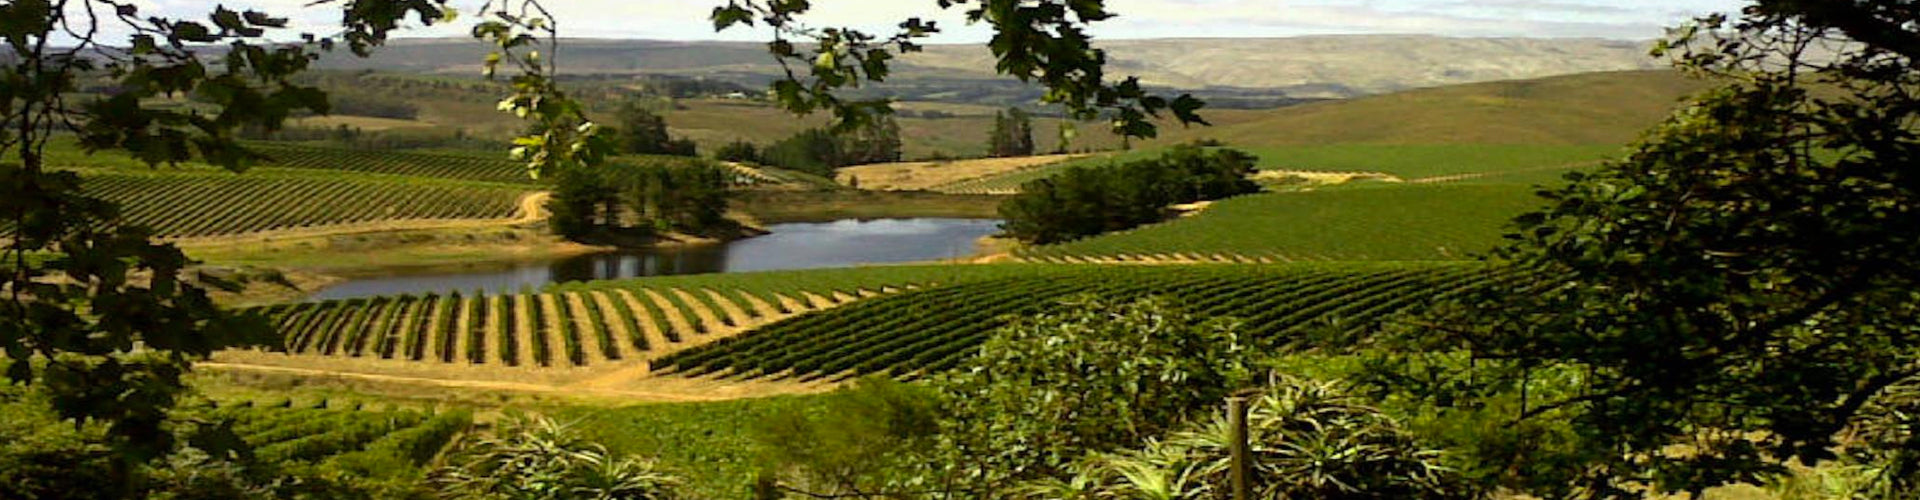 Richard Kershaw Wines Vineyards in Elgin, South Africa